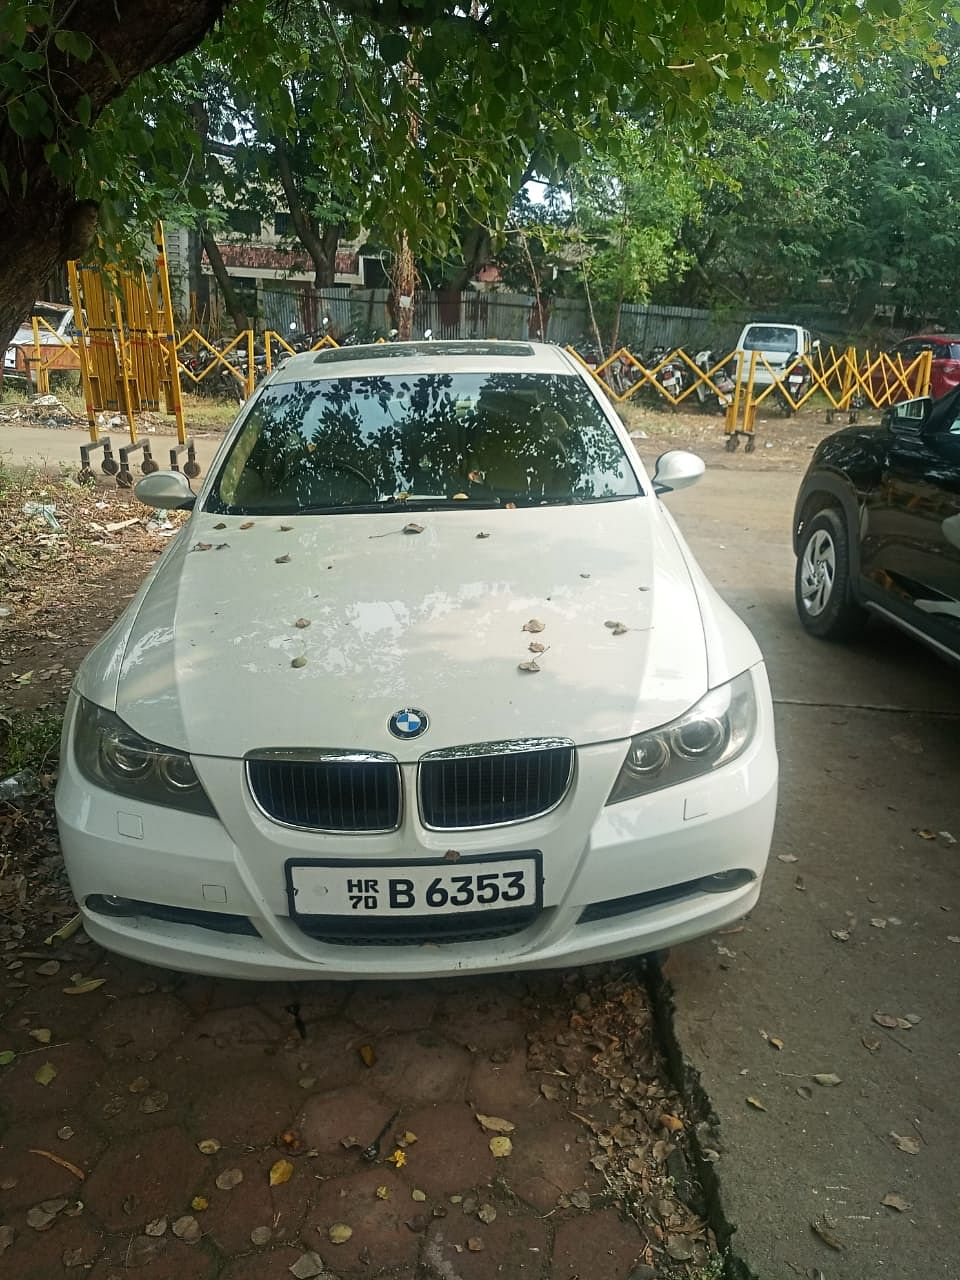 Indore: Rs 48K worth foreign liquor seized from BMW being used for smuggling